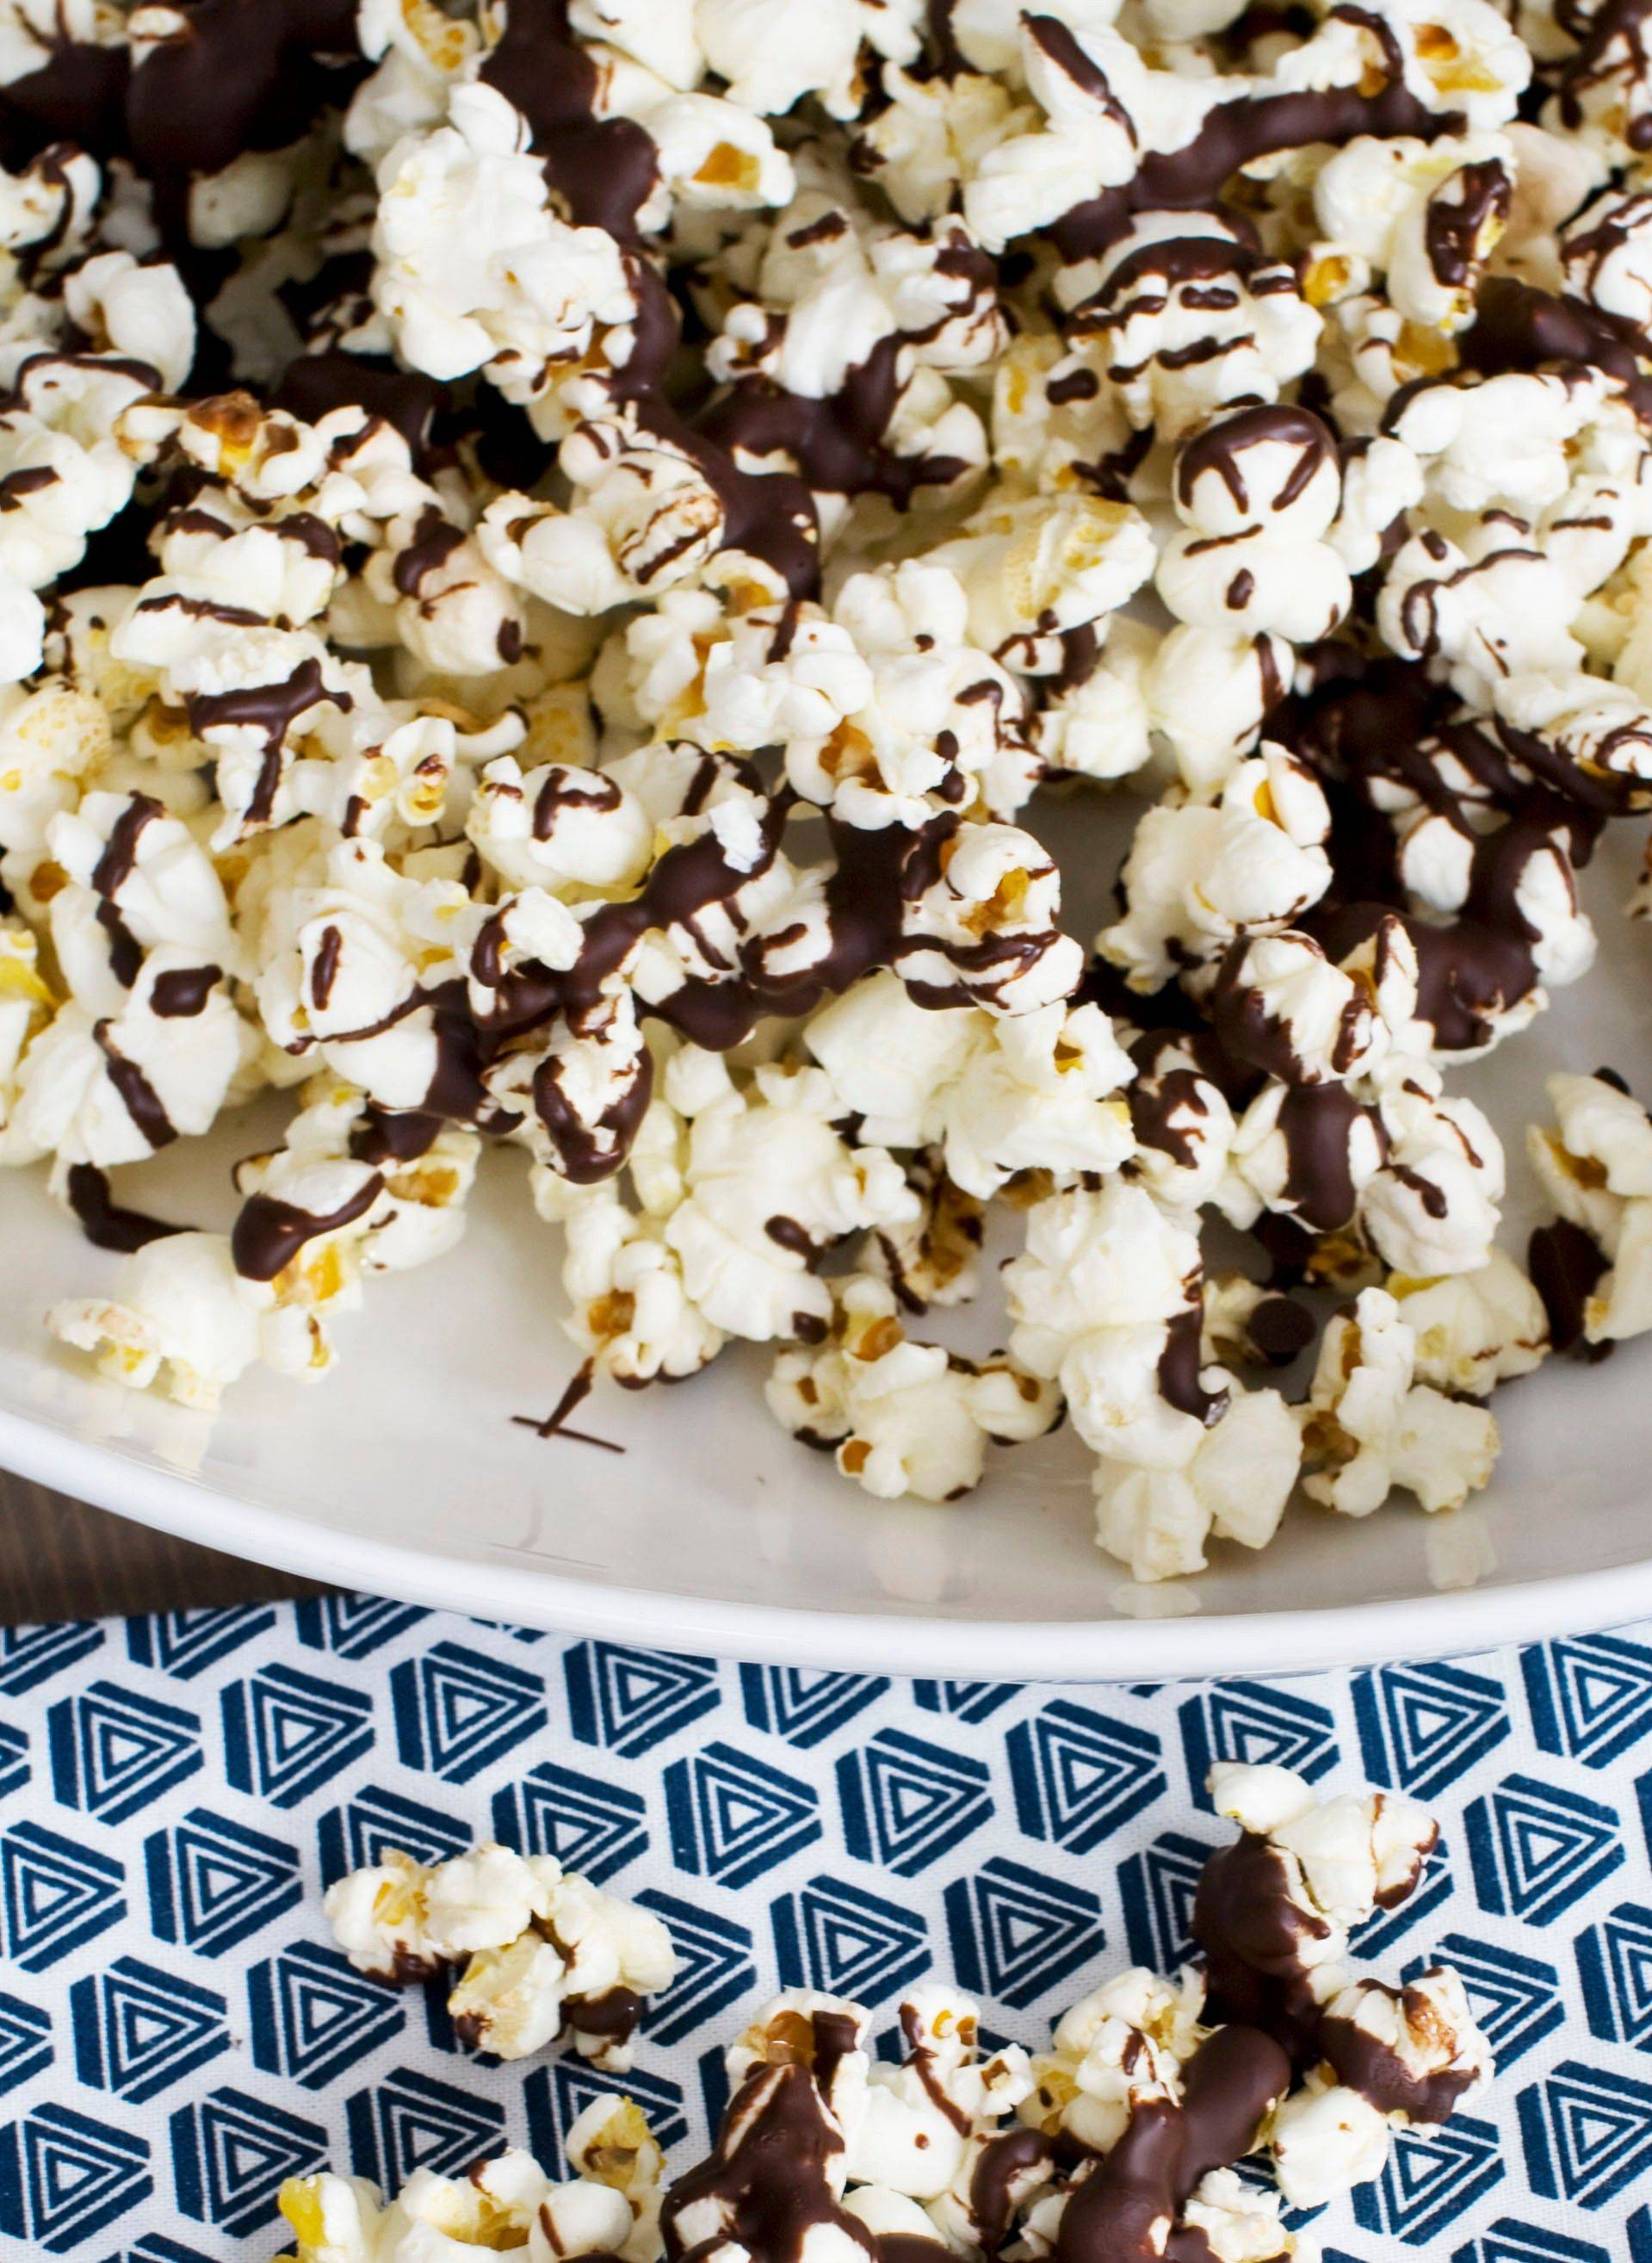 Melted chocolate dresses up stovetop popcorn for an Oscar party and any special occasion.